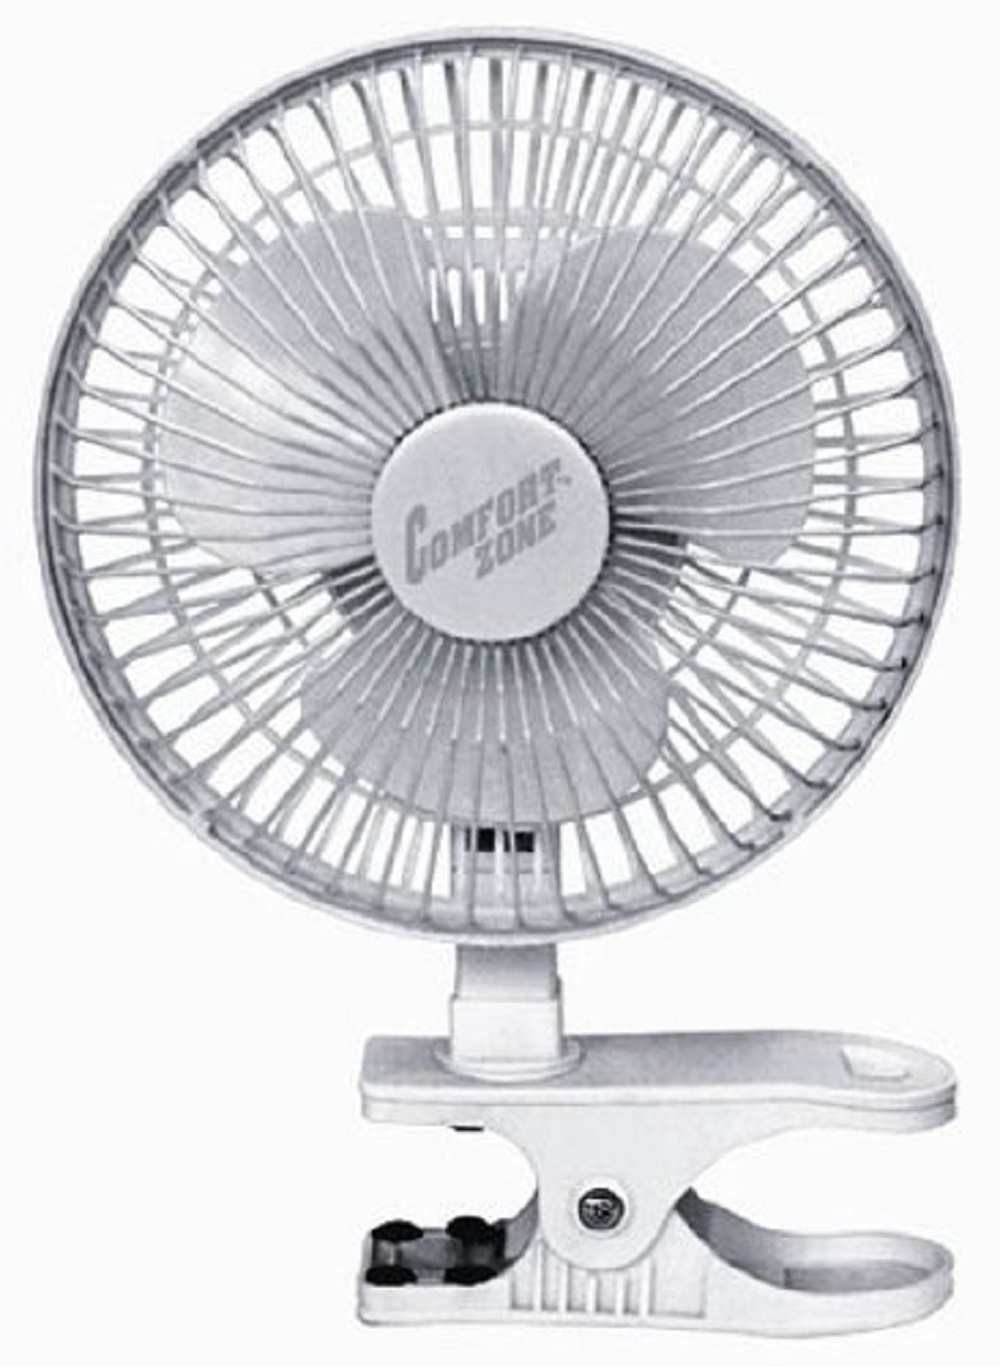 Bunk Junk Clip-on Fan